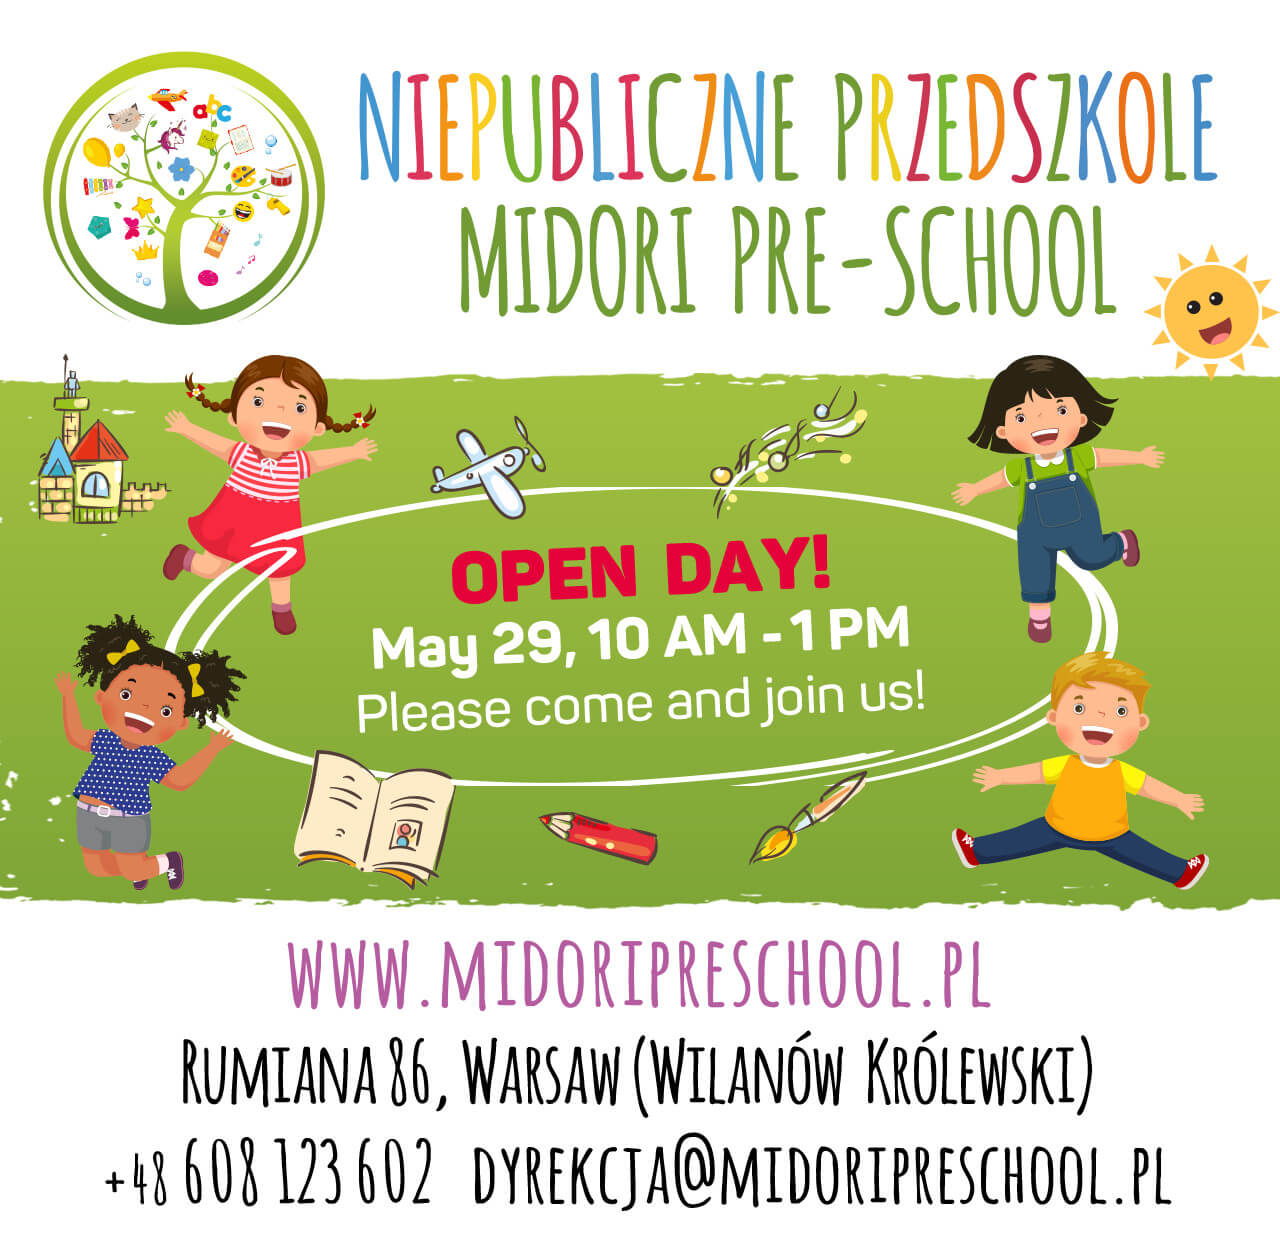 Open Day! May 29, 10 AM - 1PM. Please come and join us!